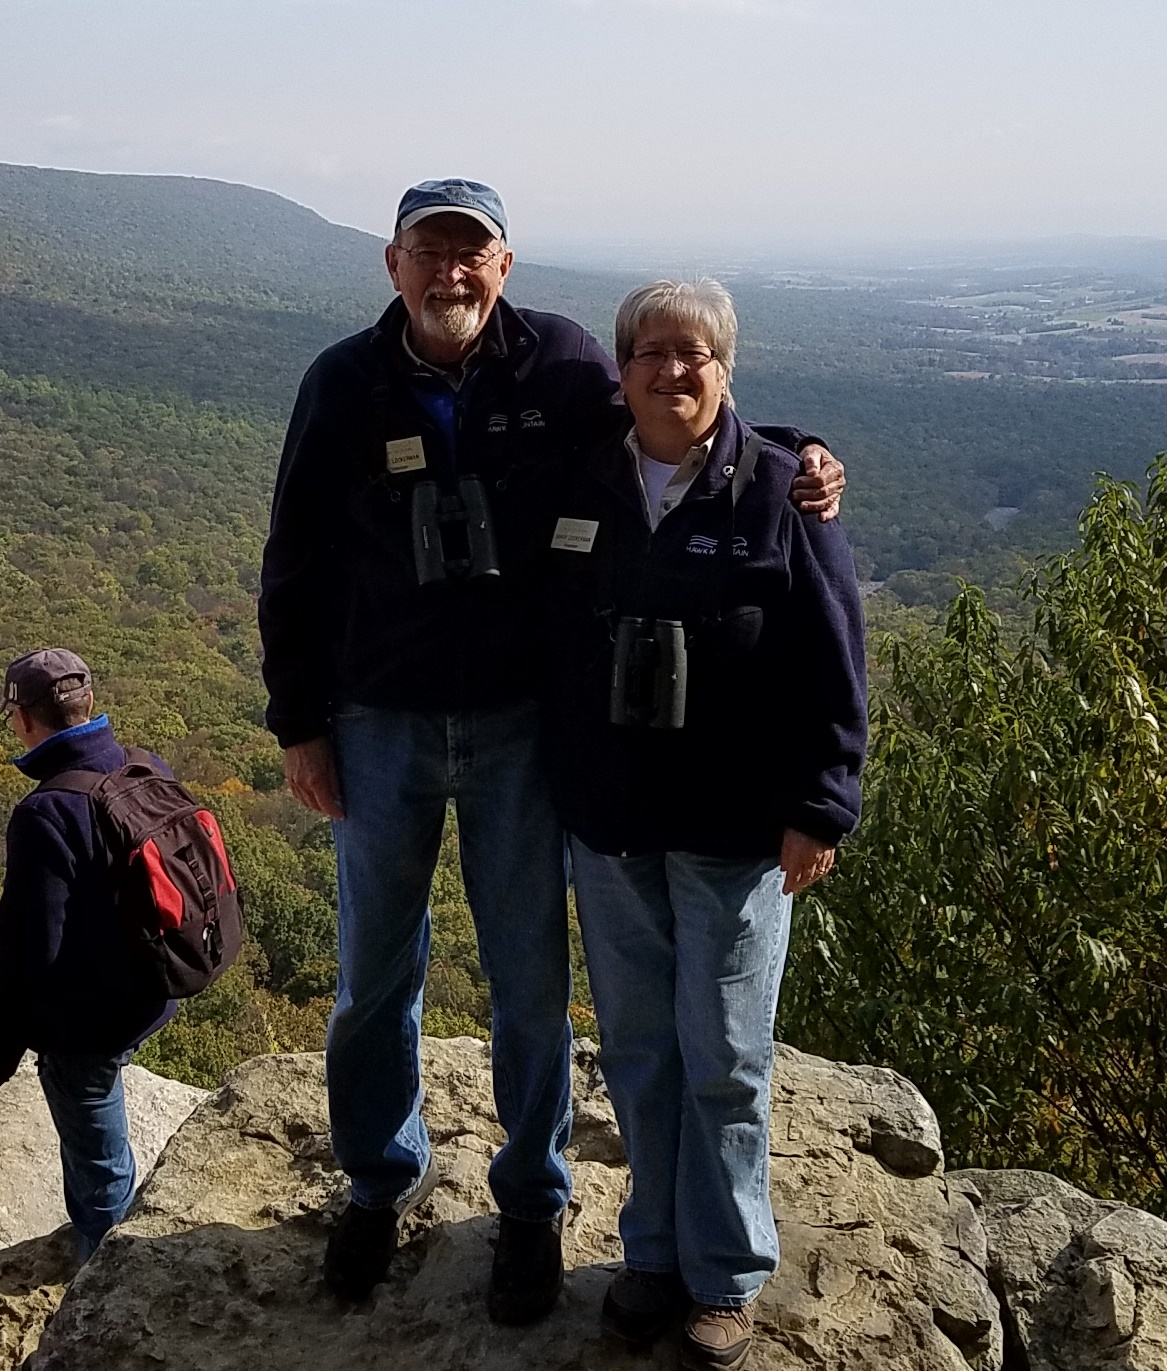 Gary and Sandy at South Lookout